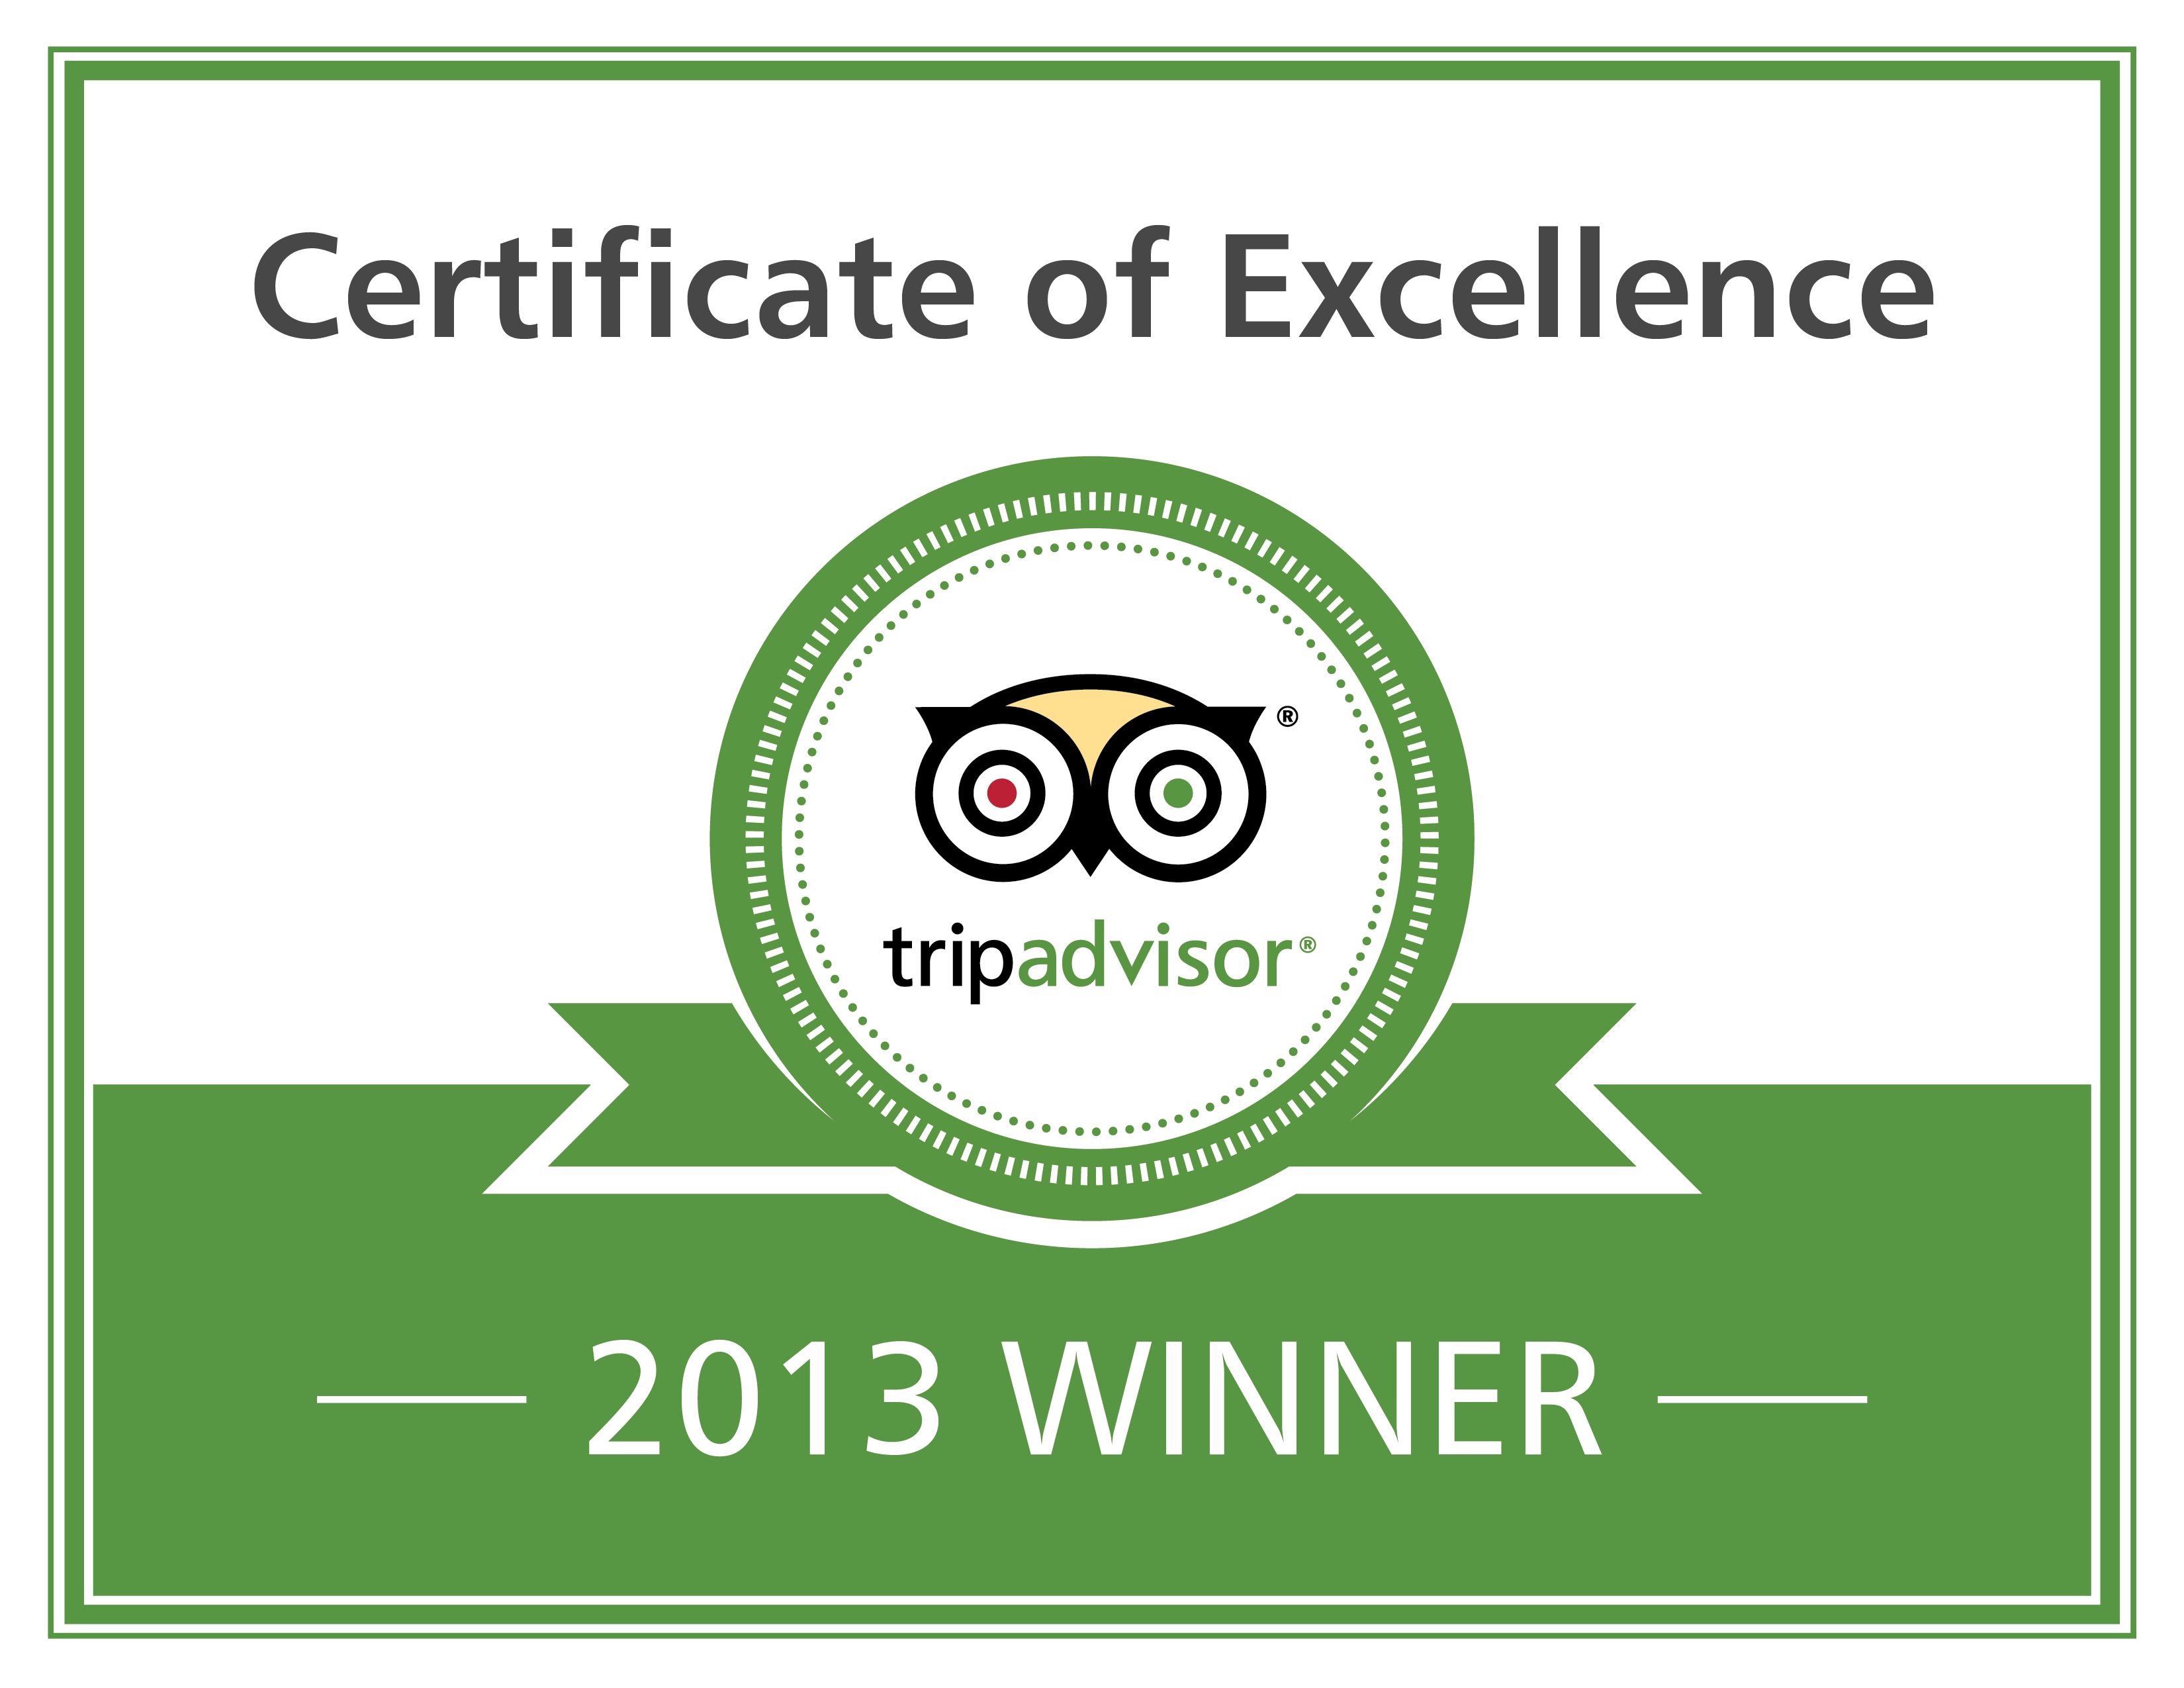 Trip Advisor Certificate of Excellence 2013 Winner